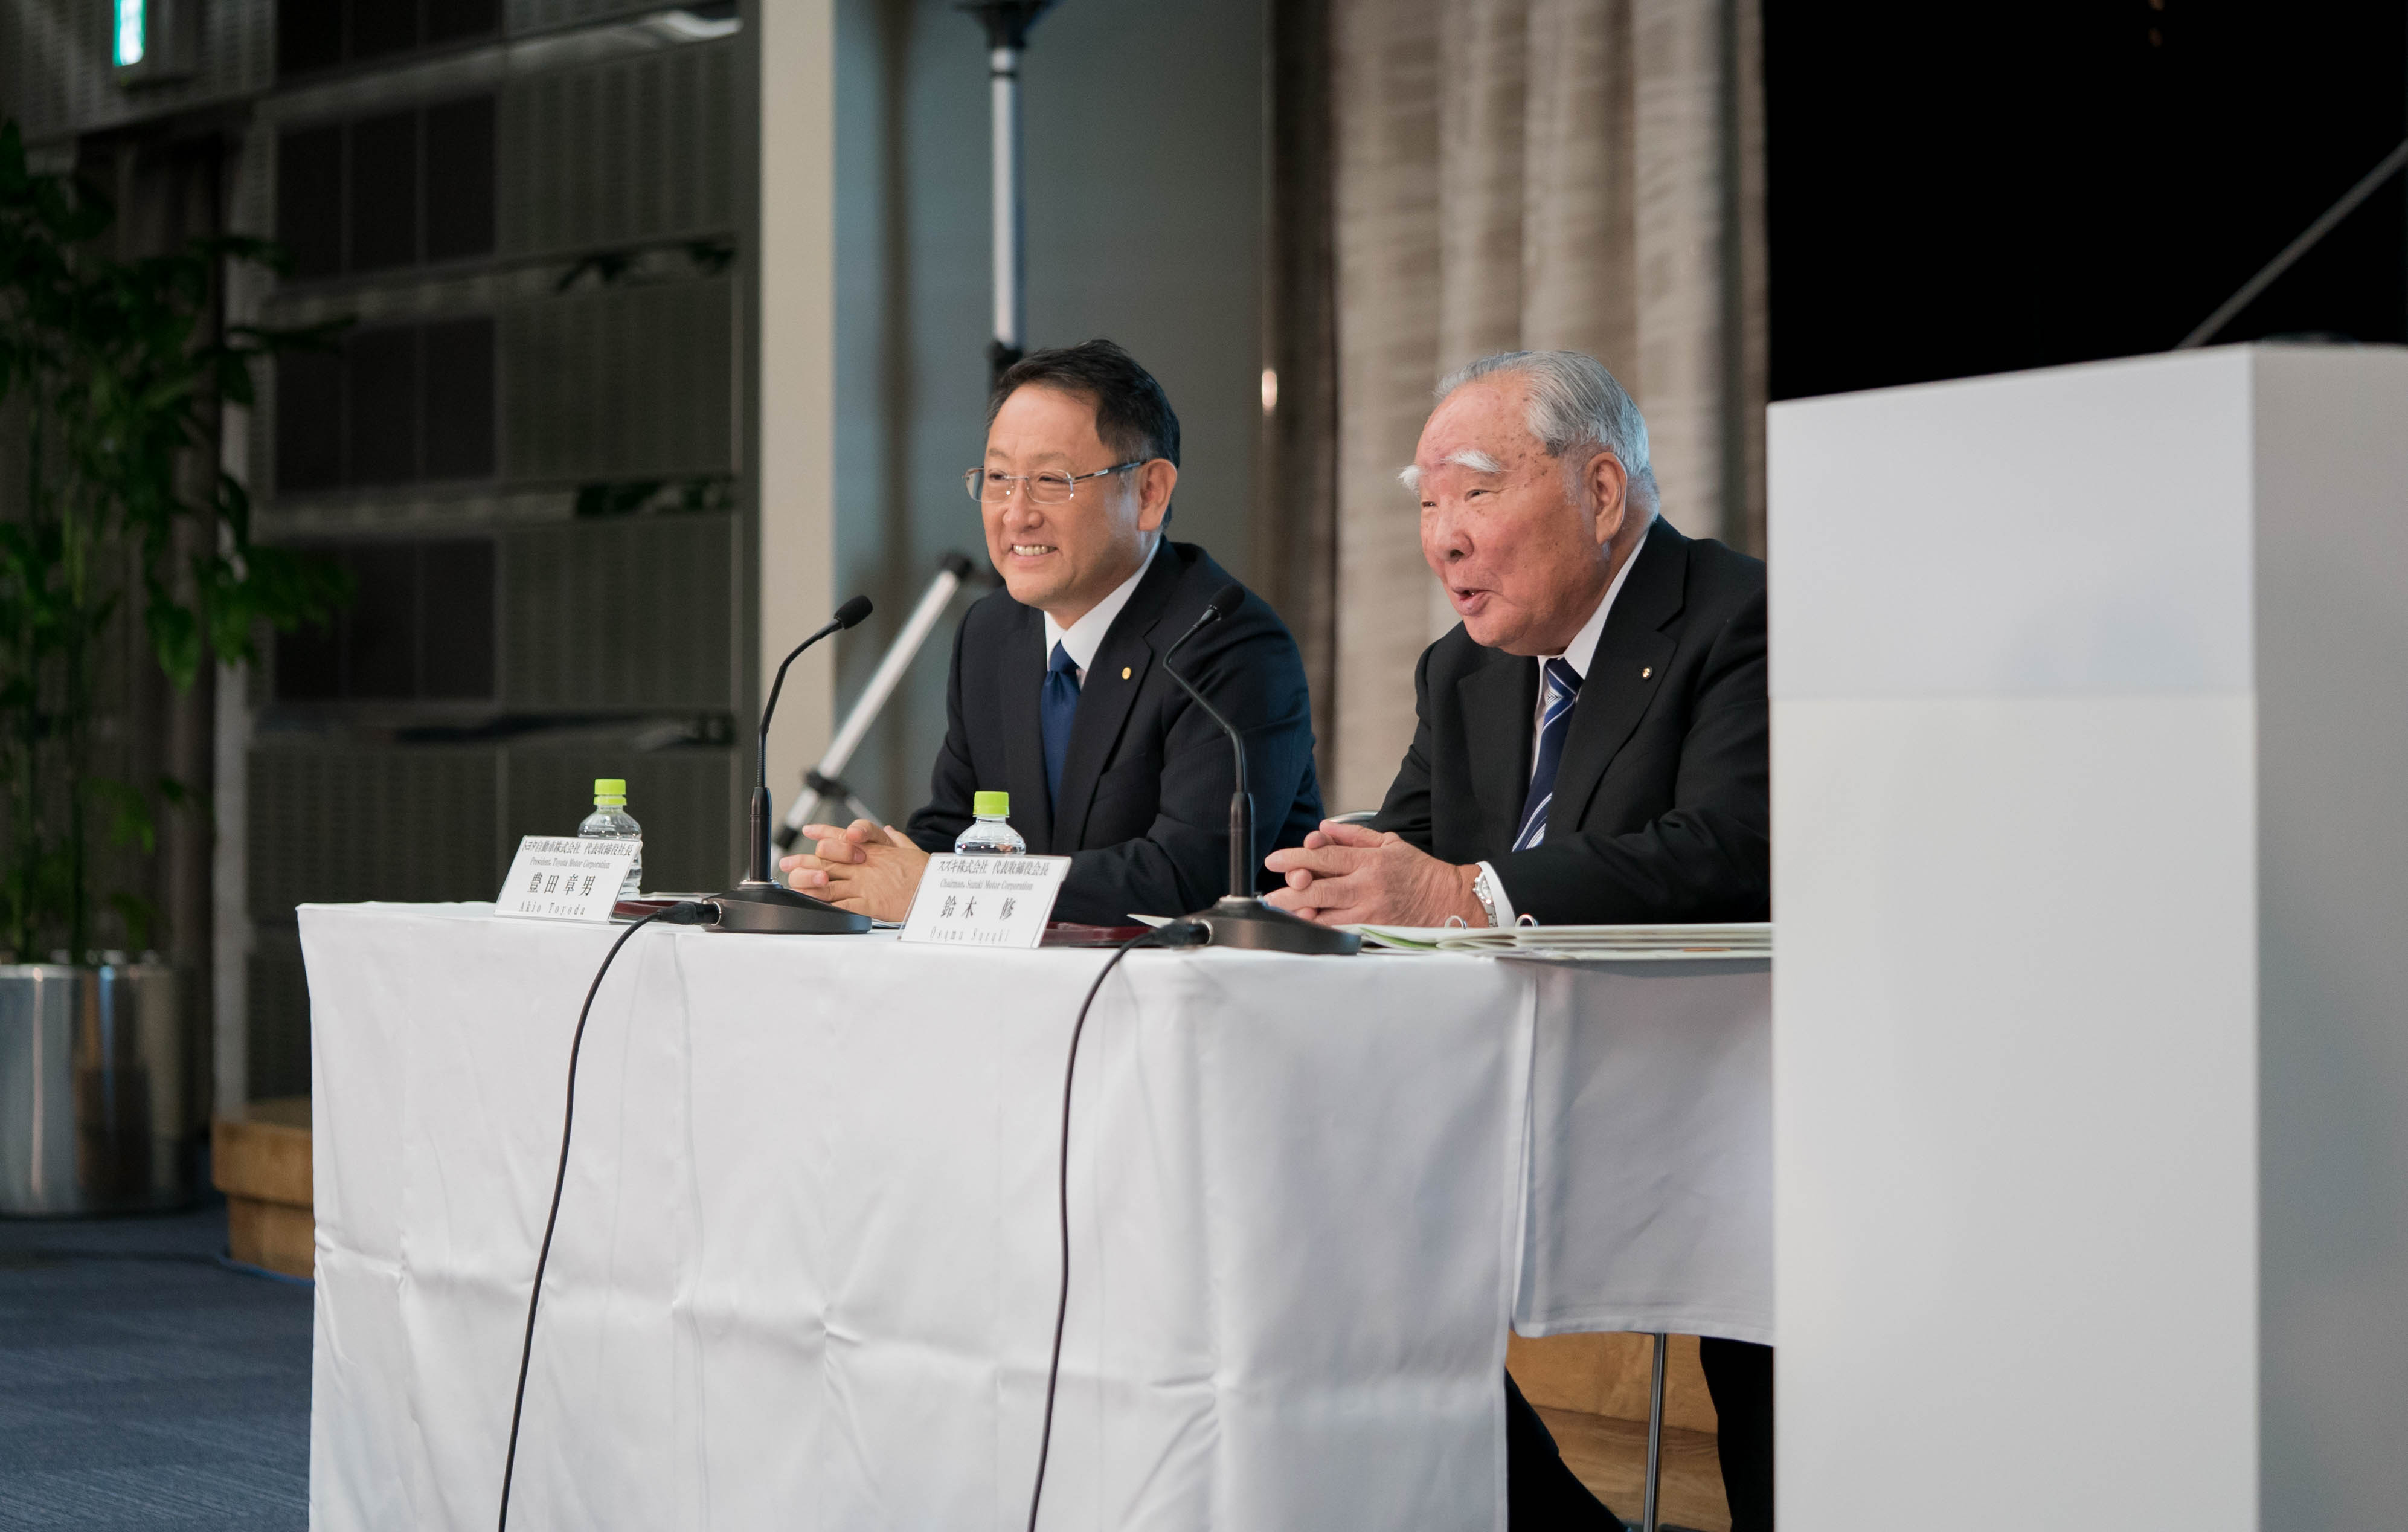 Toyota's president, Akio Toyoda, and Suzuki's chairman, Osamu Suzuki, at the press conference